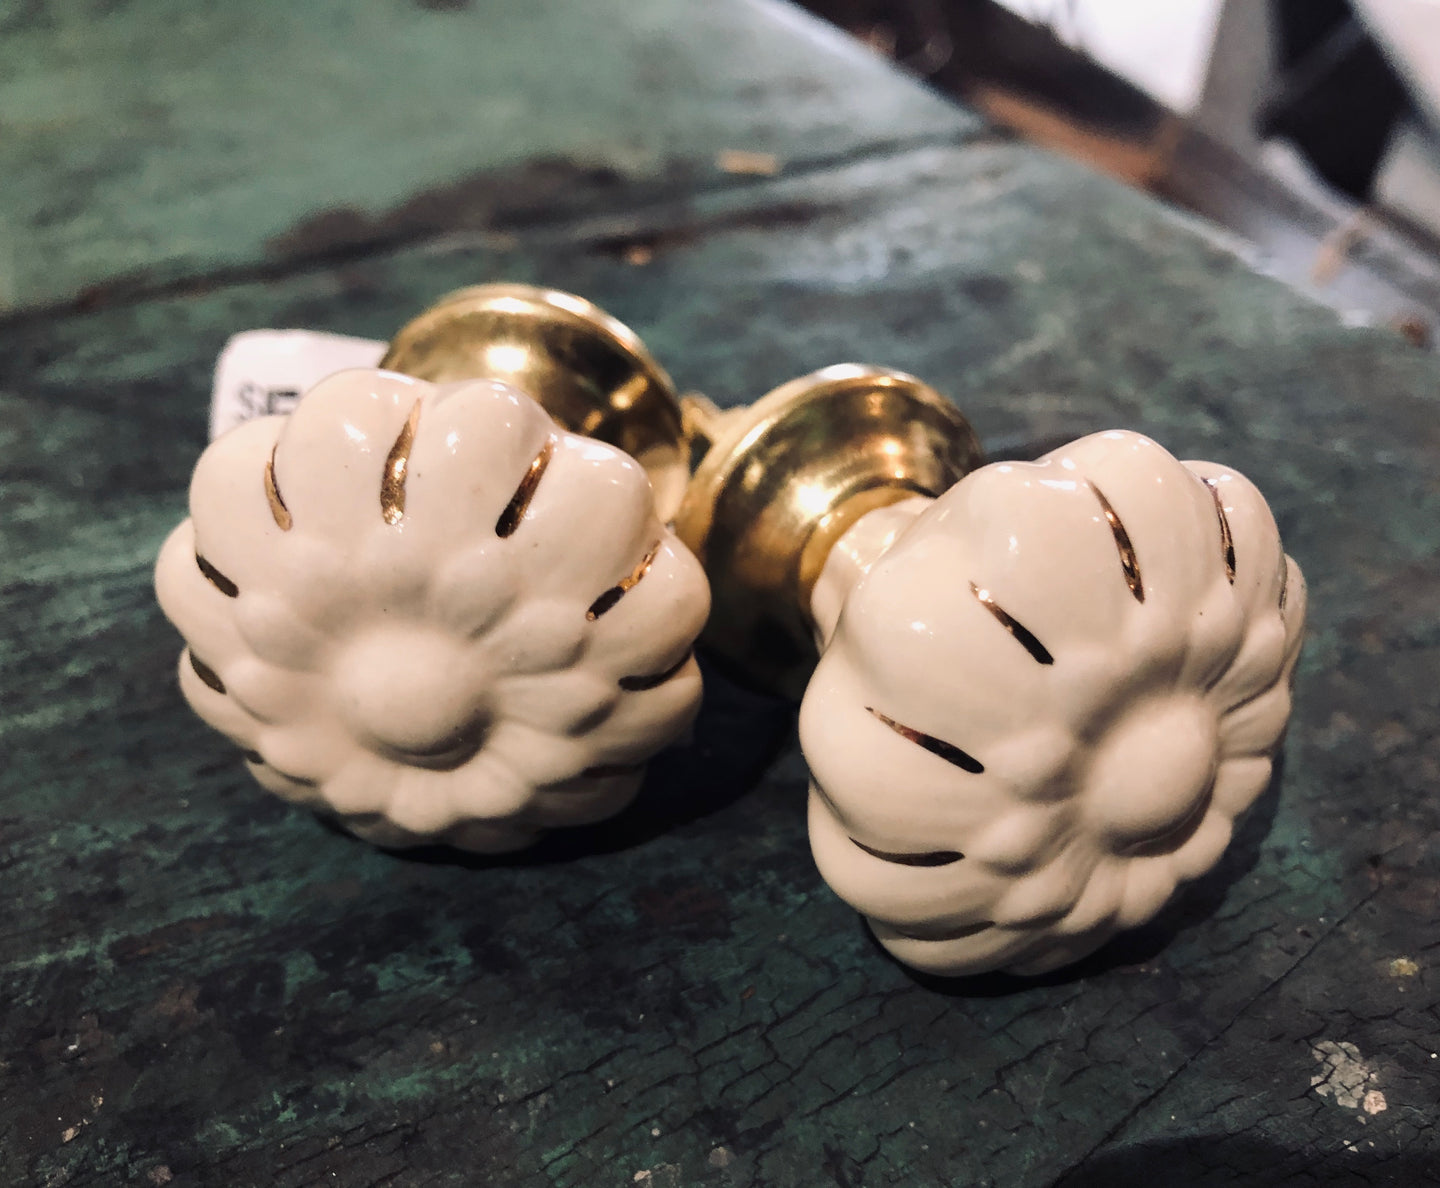 White daisy pulls/knobs with gold accents